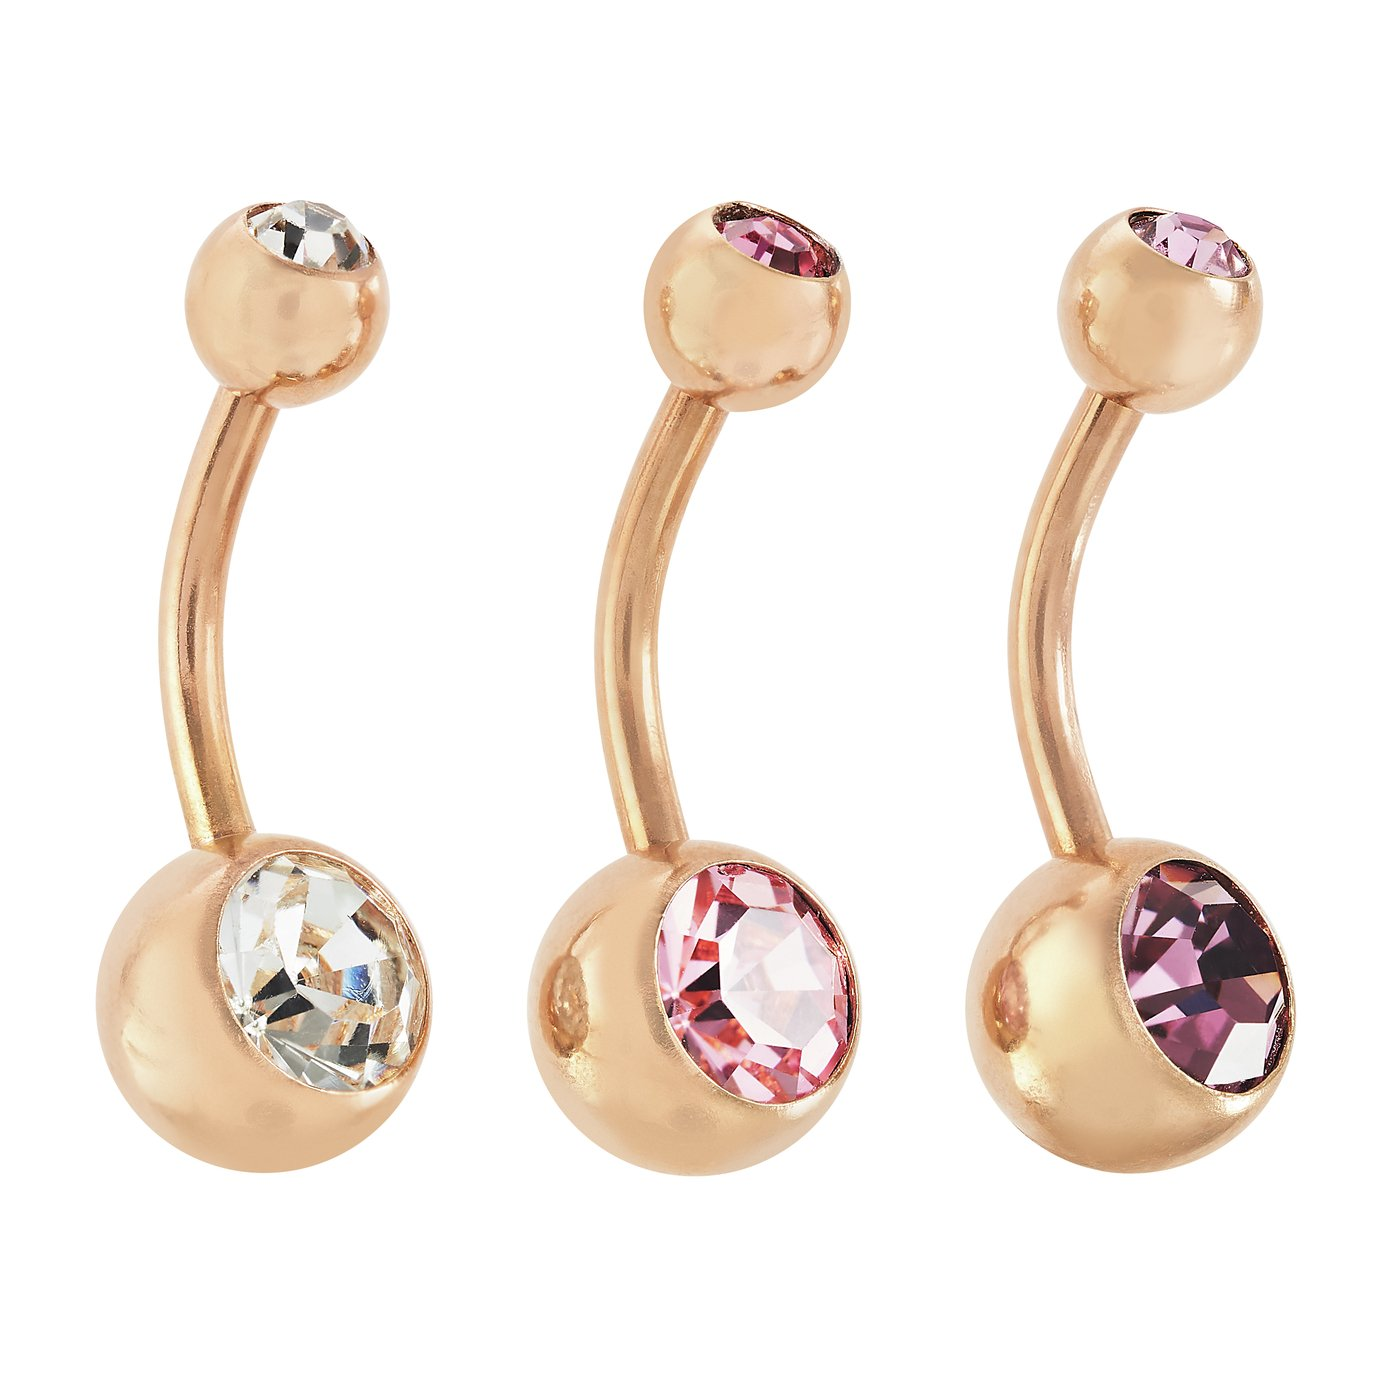 a413f5270 State of Mine 9ct Rose Gold Plated Set of 3 Belly Bars from State of Mine